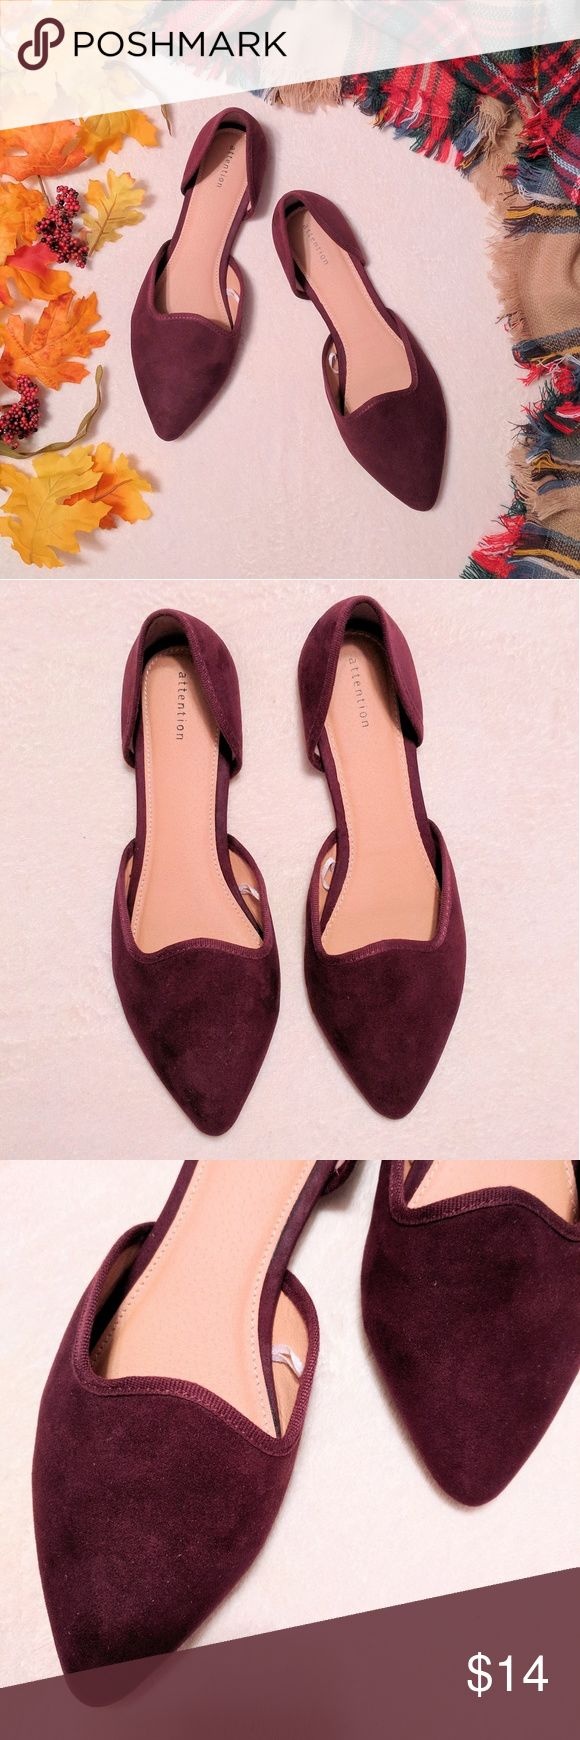 Women's Pointed Toe Flats These slip on women's flats are your go-to for everyday wear & feature a pointed toe. Open sides promote airflow while letting the synthetic suede heel cup and toe strap stand out. Slightly cushioned and featuring a quarter-inch heel, these shoes will keep you comfortable for any event. The plum color makes a perfect addition to your fall wardrobe! Measurement from point to heel is 10.75 inches. Shoes are in excellent condition and have only been worn once! Offers…